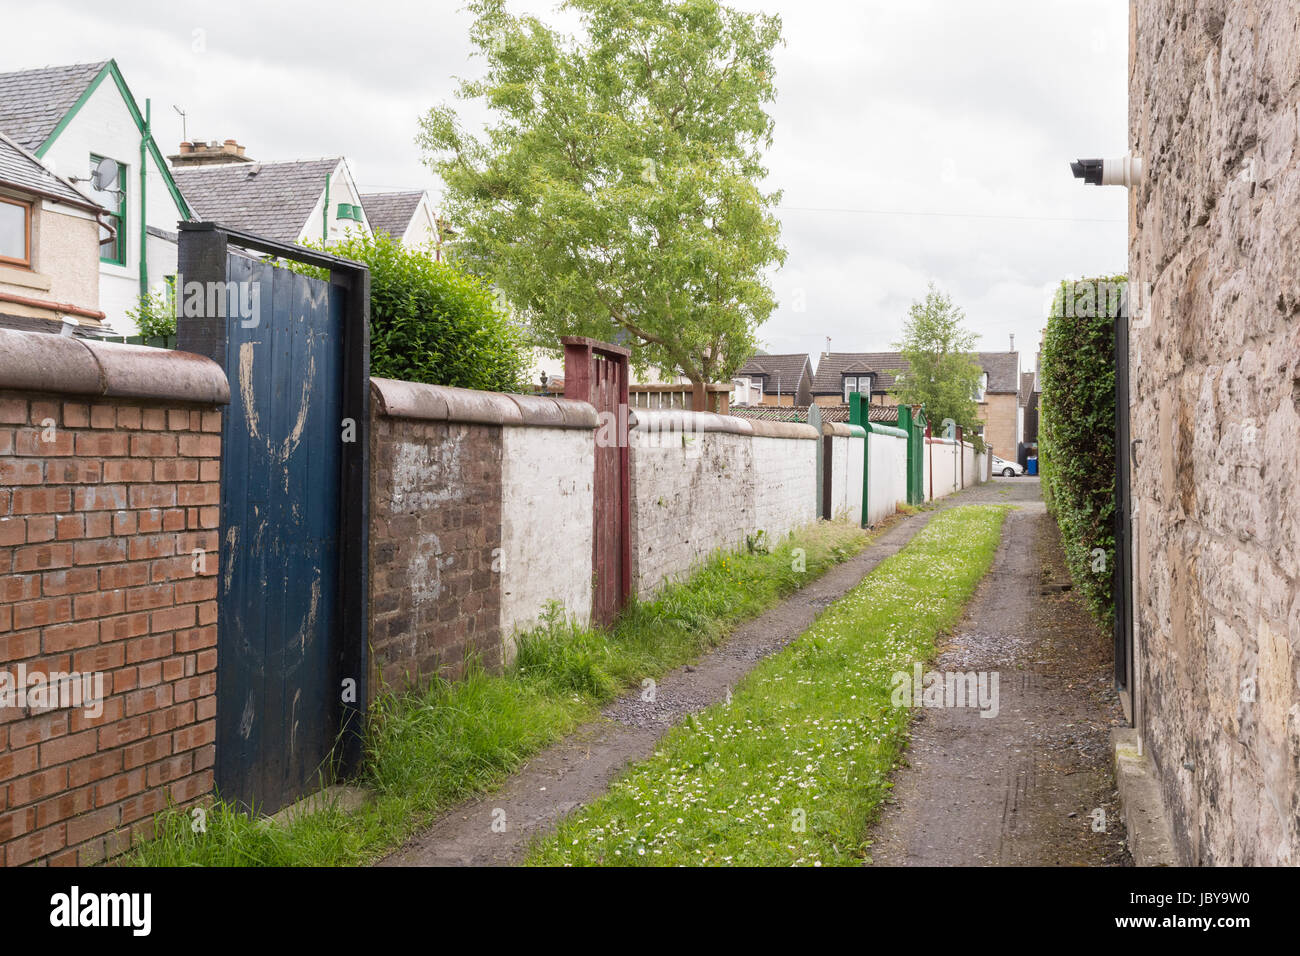 Narrow alley, passageway, alleyway in Dumbarton, Scotland, Uk - known as a vennel - Stock Image